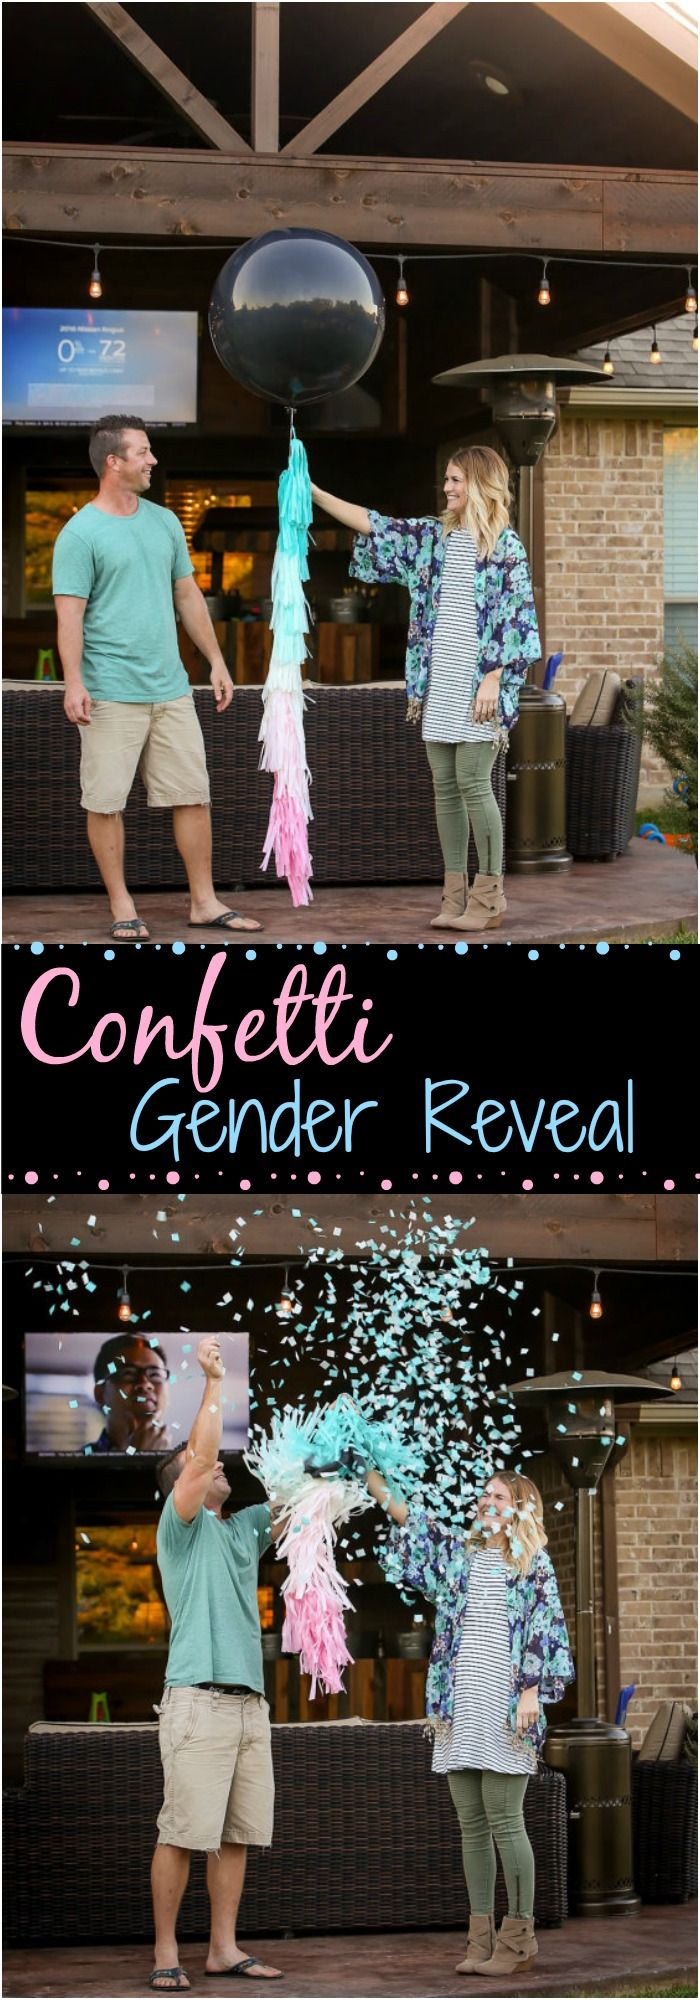 If we have another baby, we would think about using balloons and confetti as one of our gender reveal ideas! We used a golf ball last time and the excitement and anticipation was so much fun ...#afflink #genderreveal #genderrevealparty #genderrevealideas #babygirl #babyboy #pregnancy #partyplanning